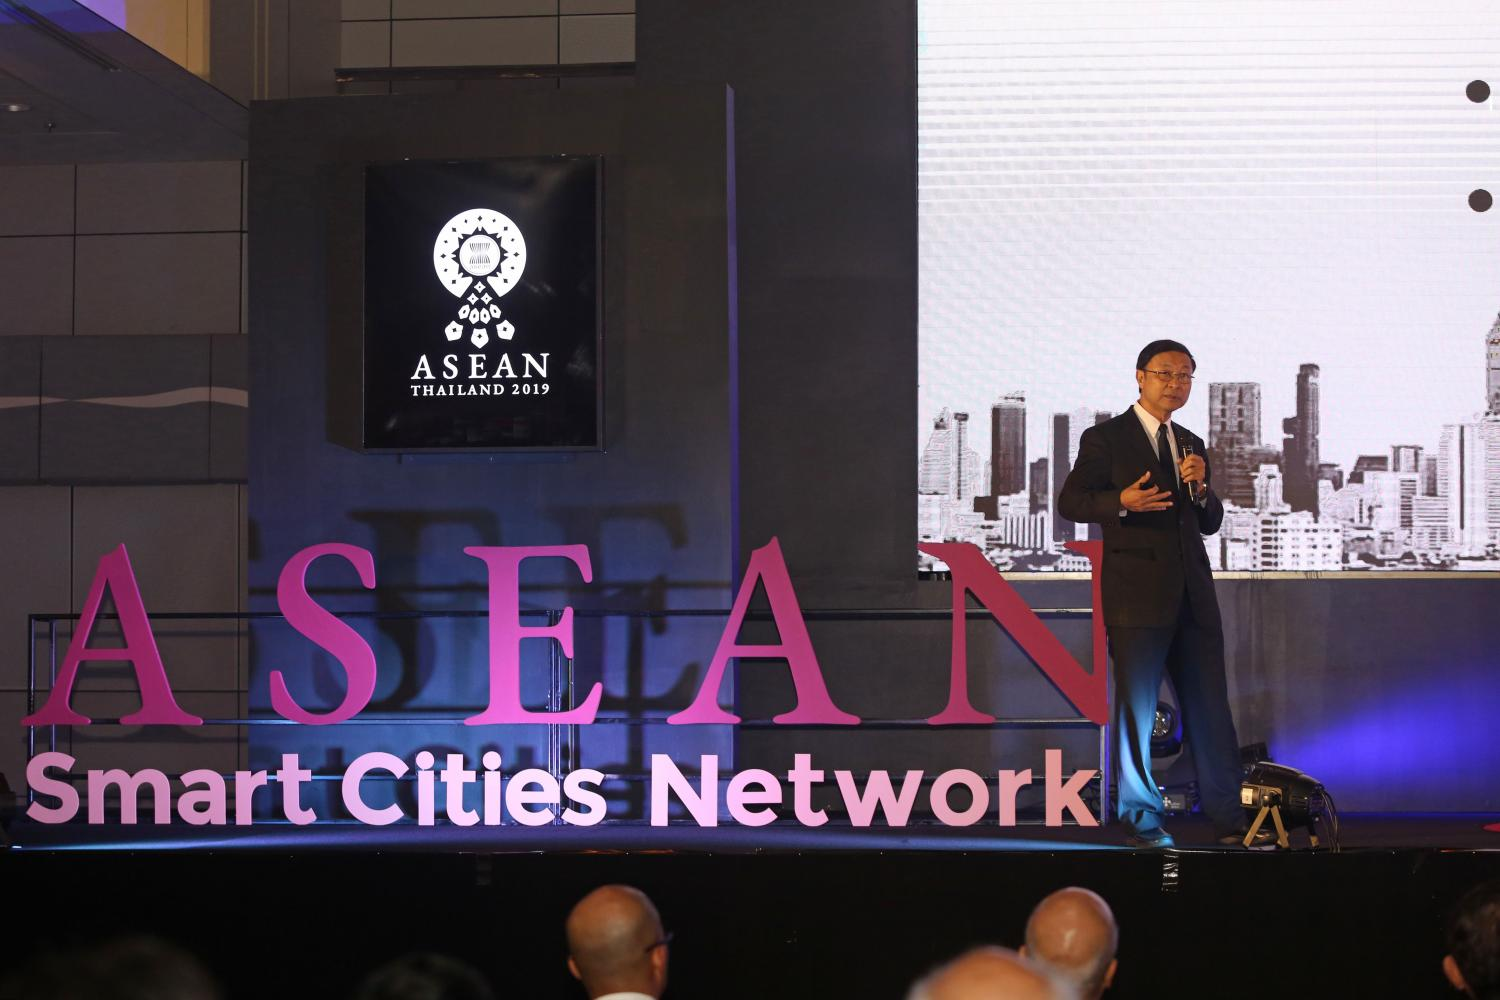 Digital Economy and Society Minister Pichet Durongkaveroj hosted the Asean Smart Cities Network Roundtable Meeting, including discussions on sustainable cities, city data platforms and best practices. Varuth Hirunyatheb